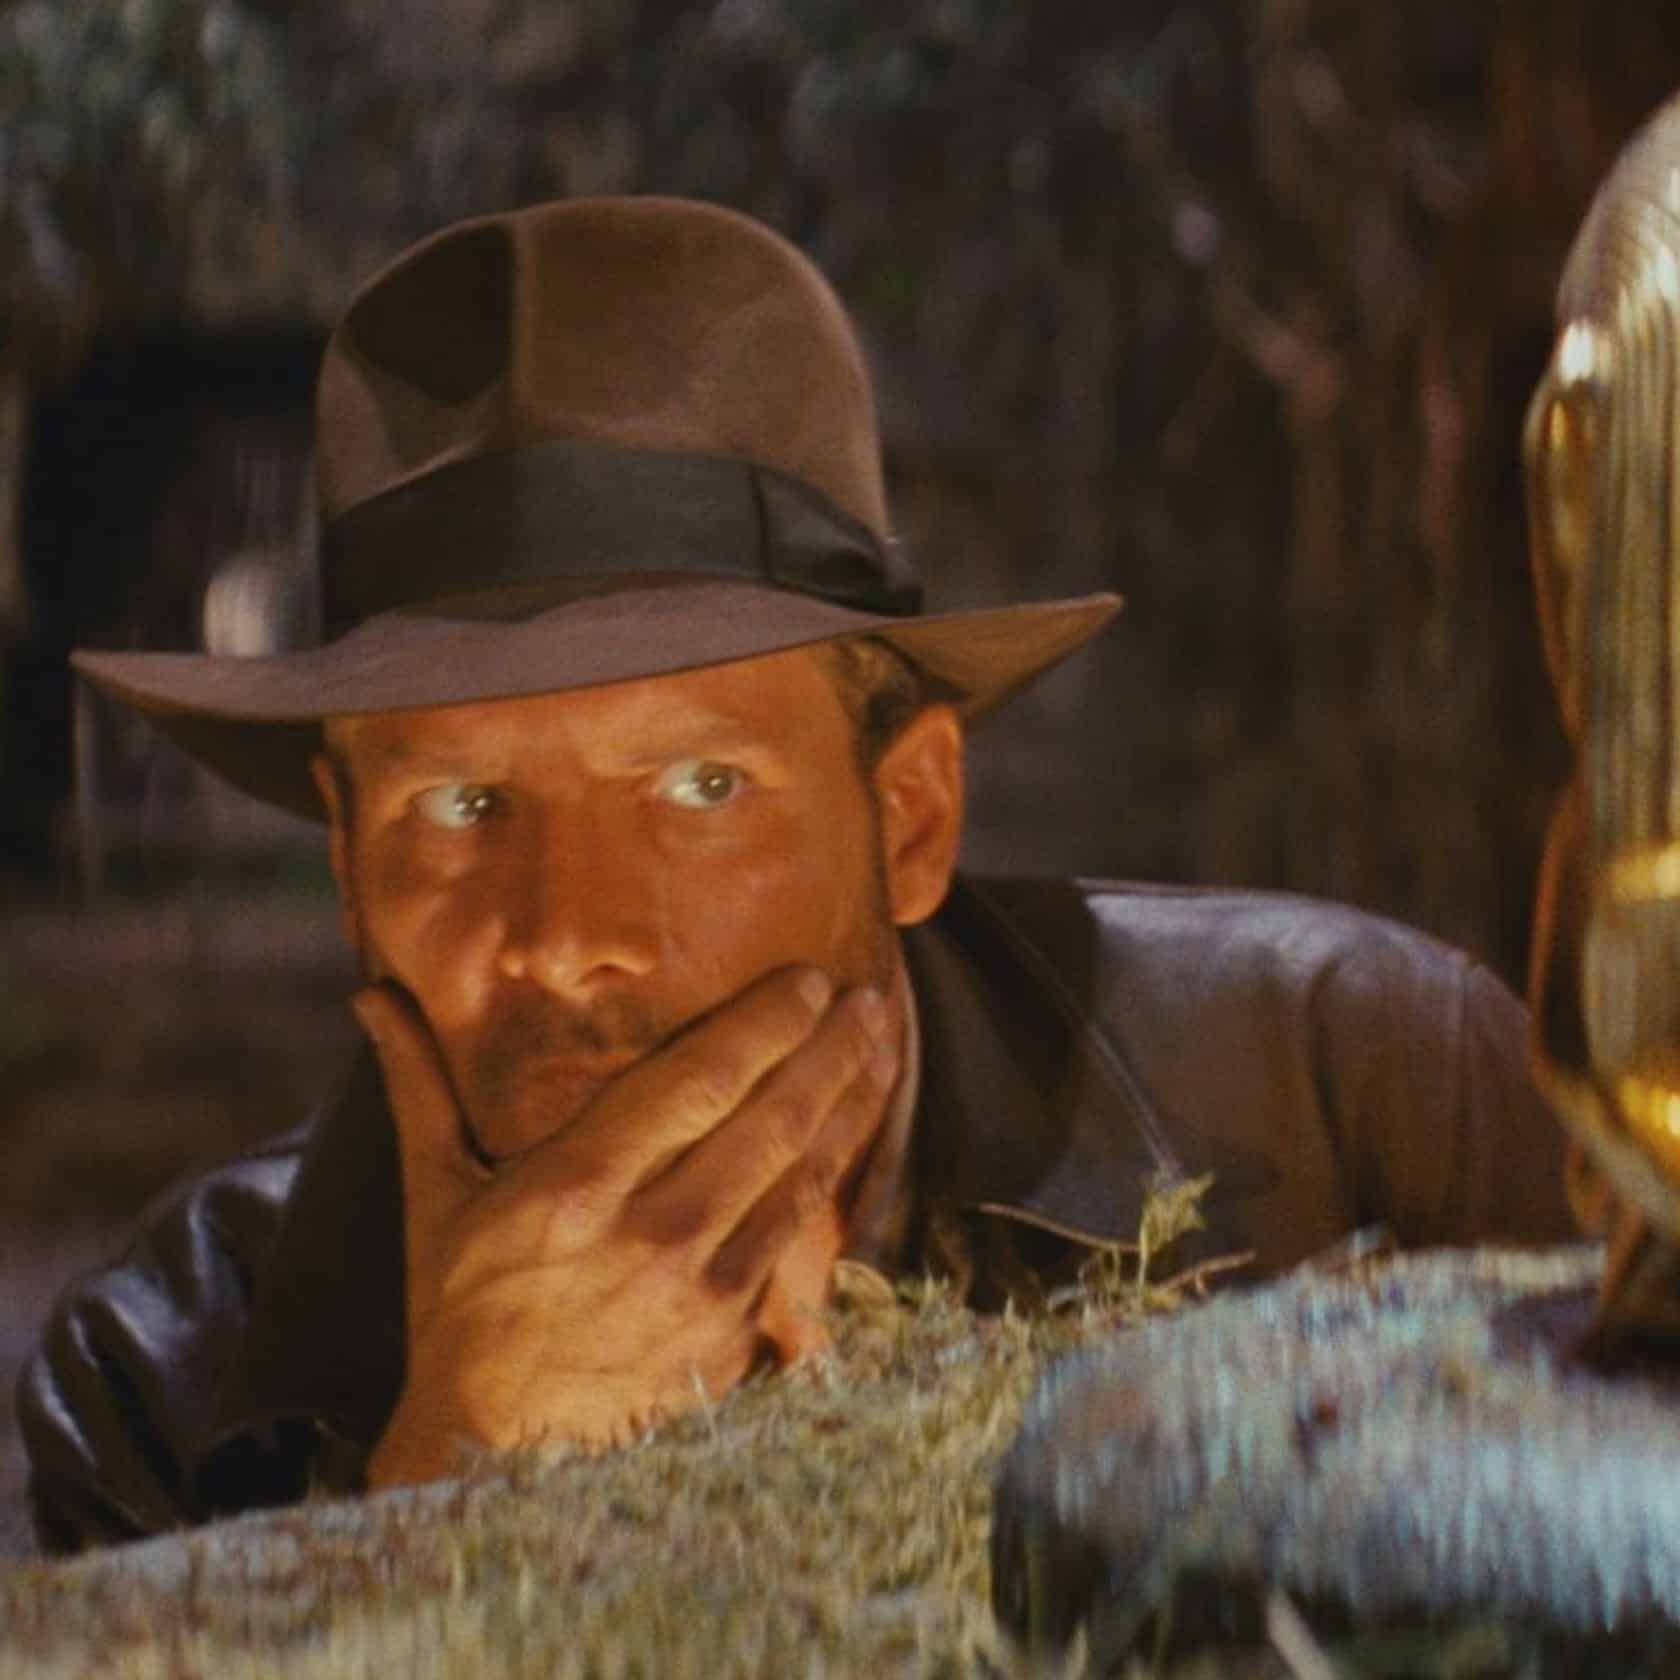 636011681877625238 XXX RAIDERS RESTORED IMAGE 51014315 e1571929705873 12 Things You Didn't Know About Raiders of the Lost Ark